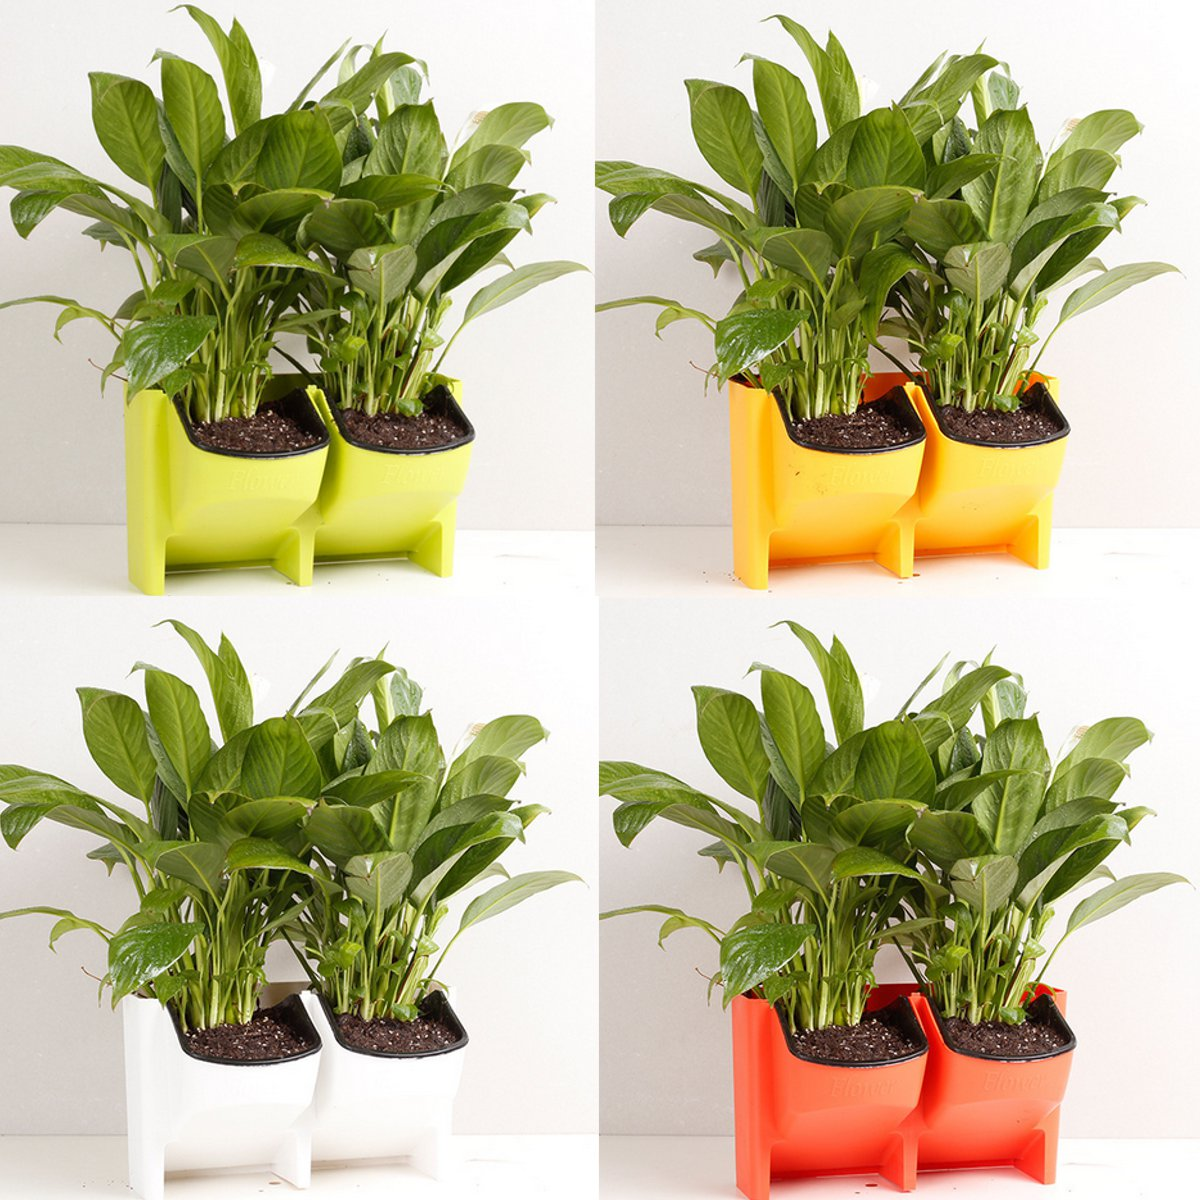 2-Pocket Vertical Gardening Limited Space Wall Stackable Planters for Indoor Outdoor Decoration or Growing Plants